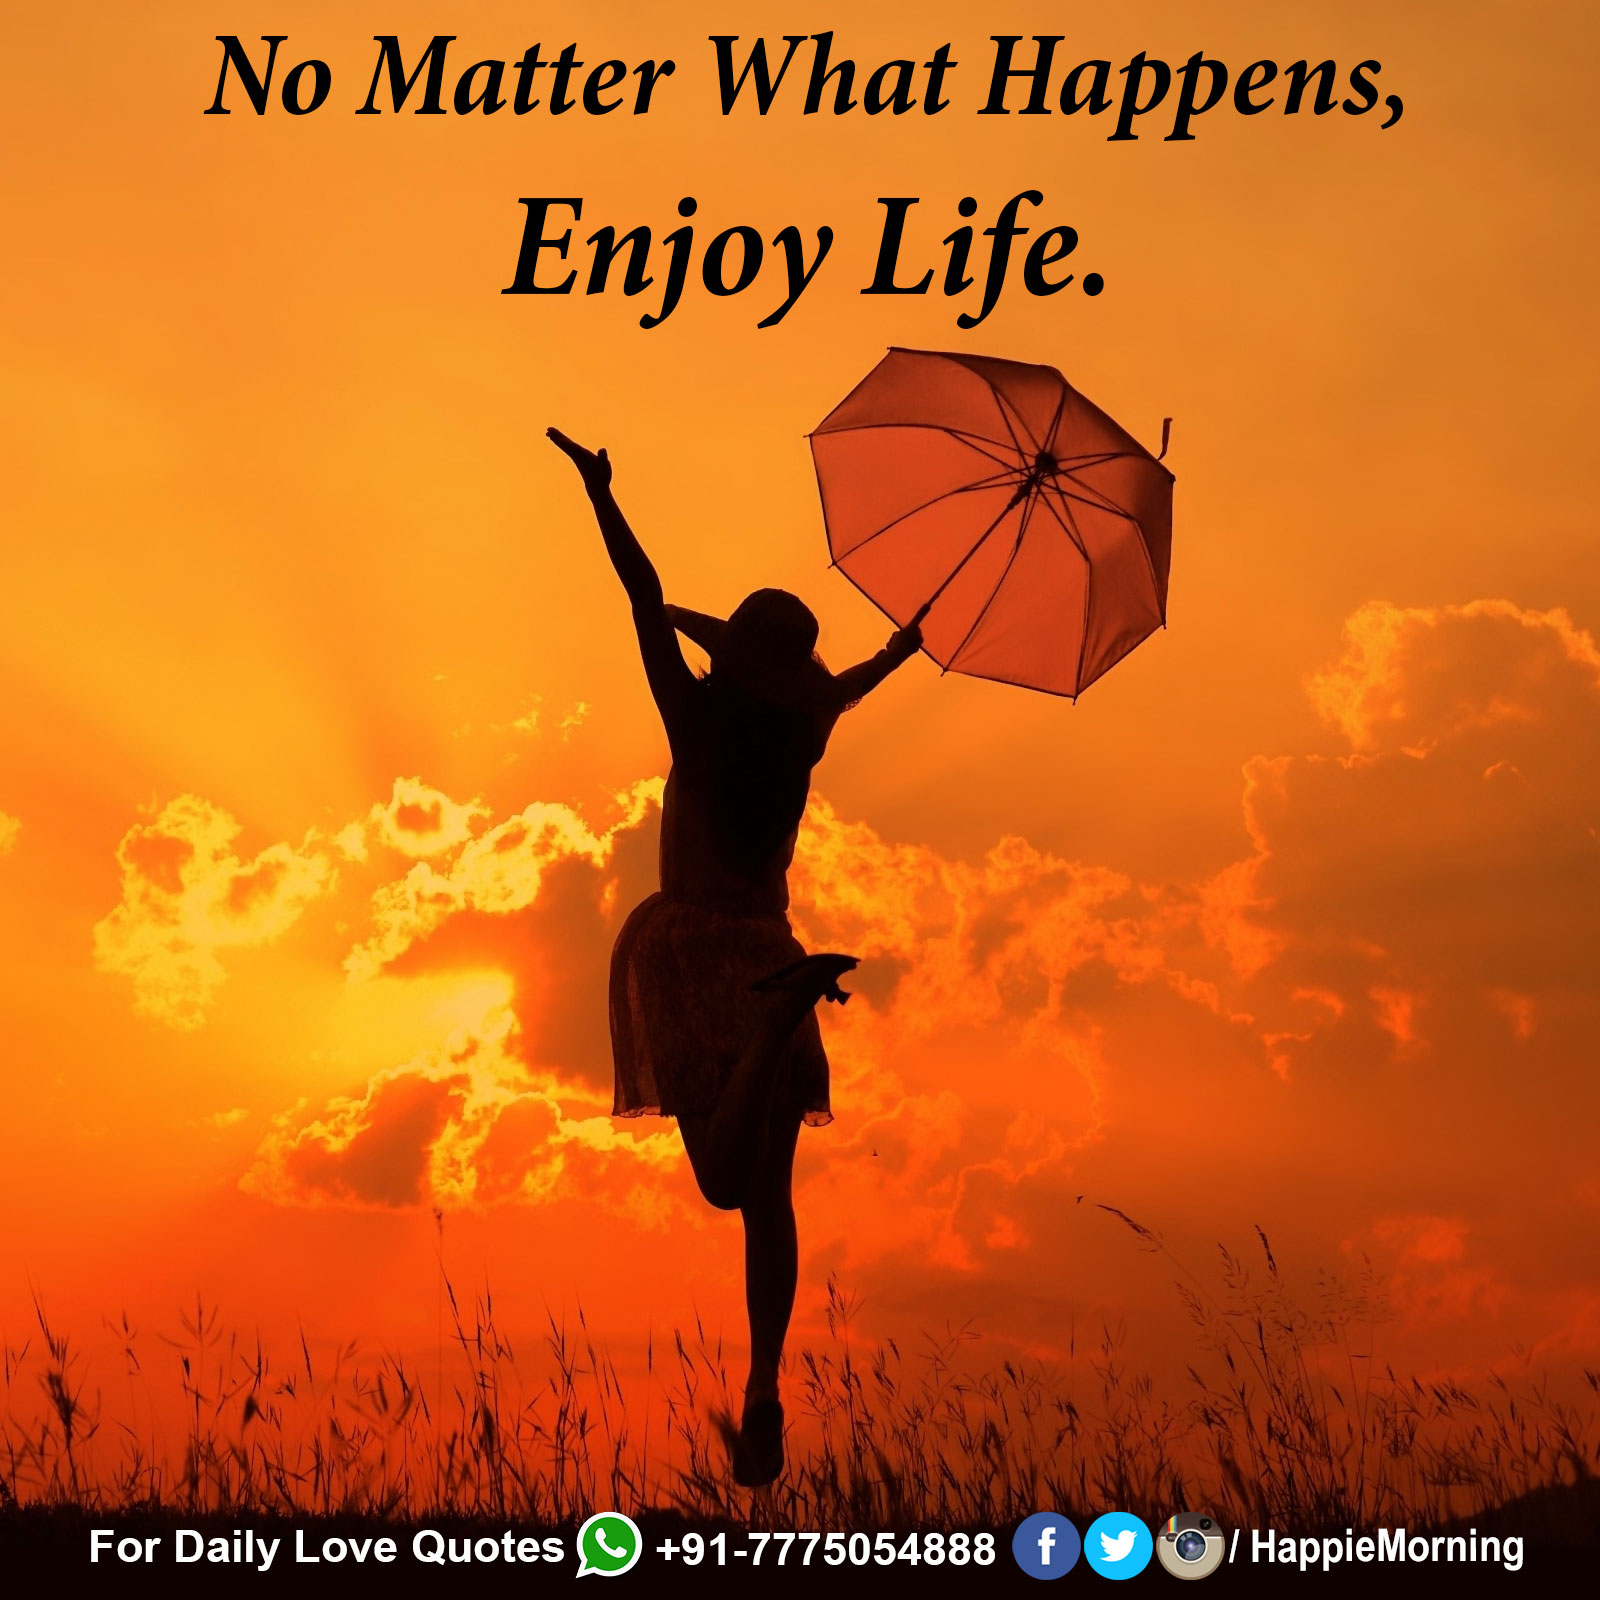 No Matter What Happens, Enjoy Life